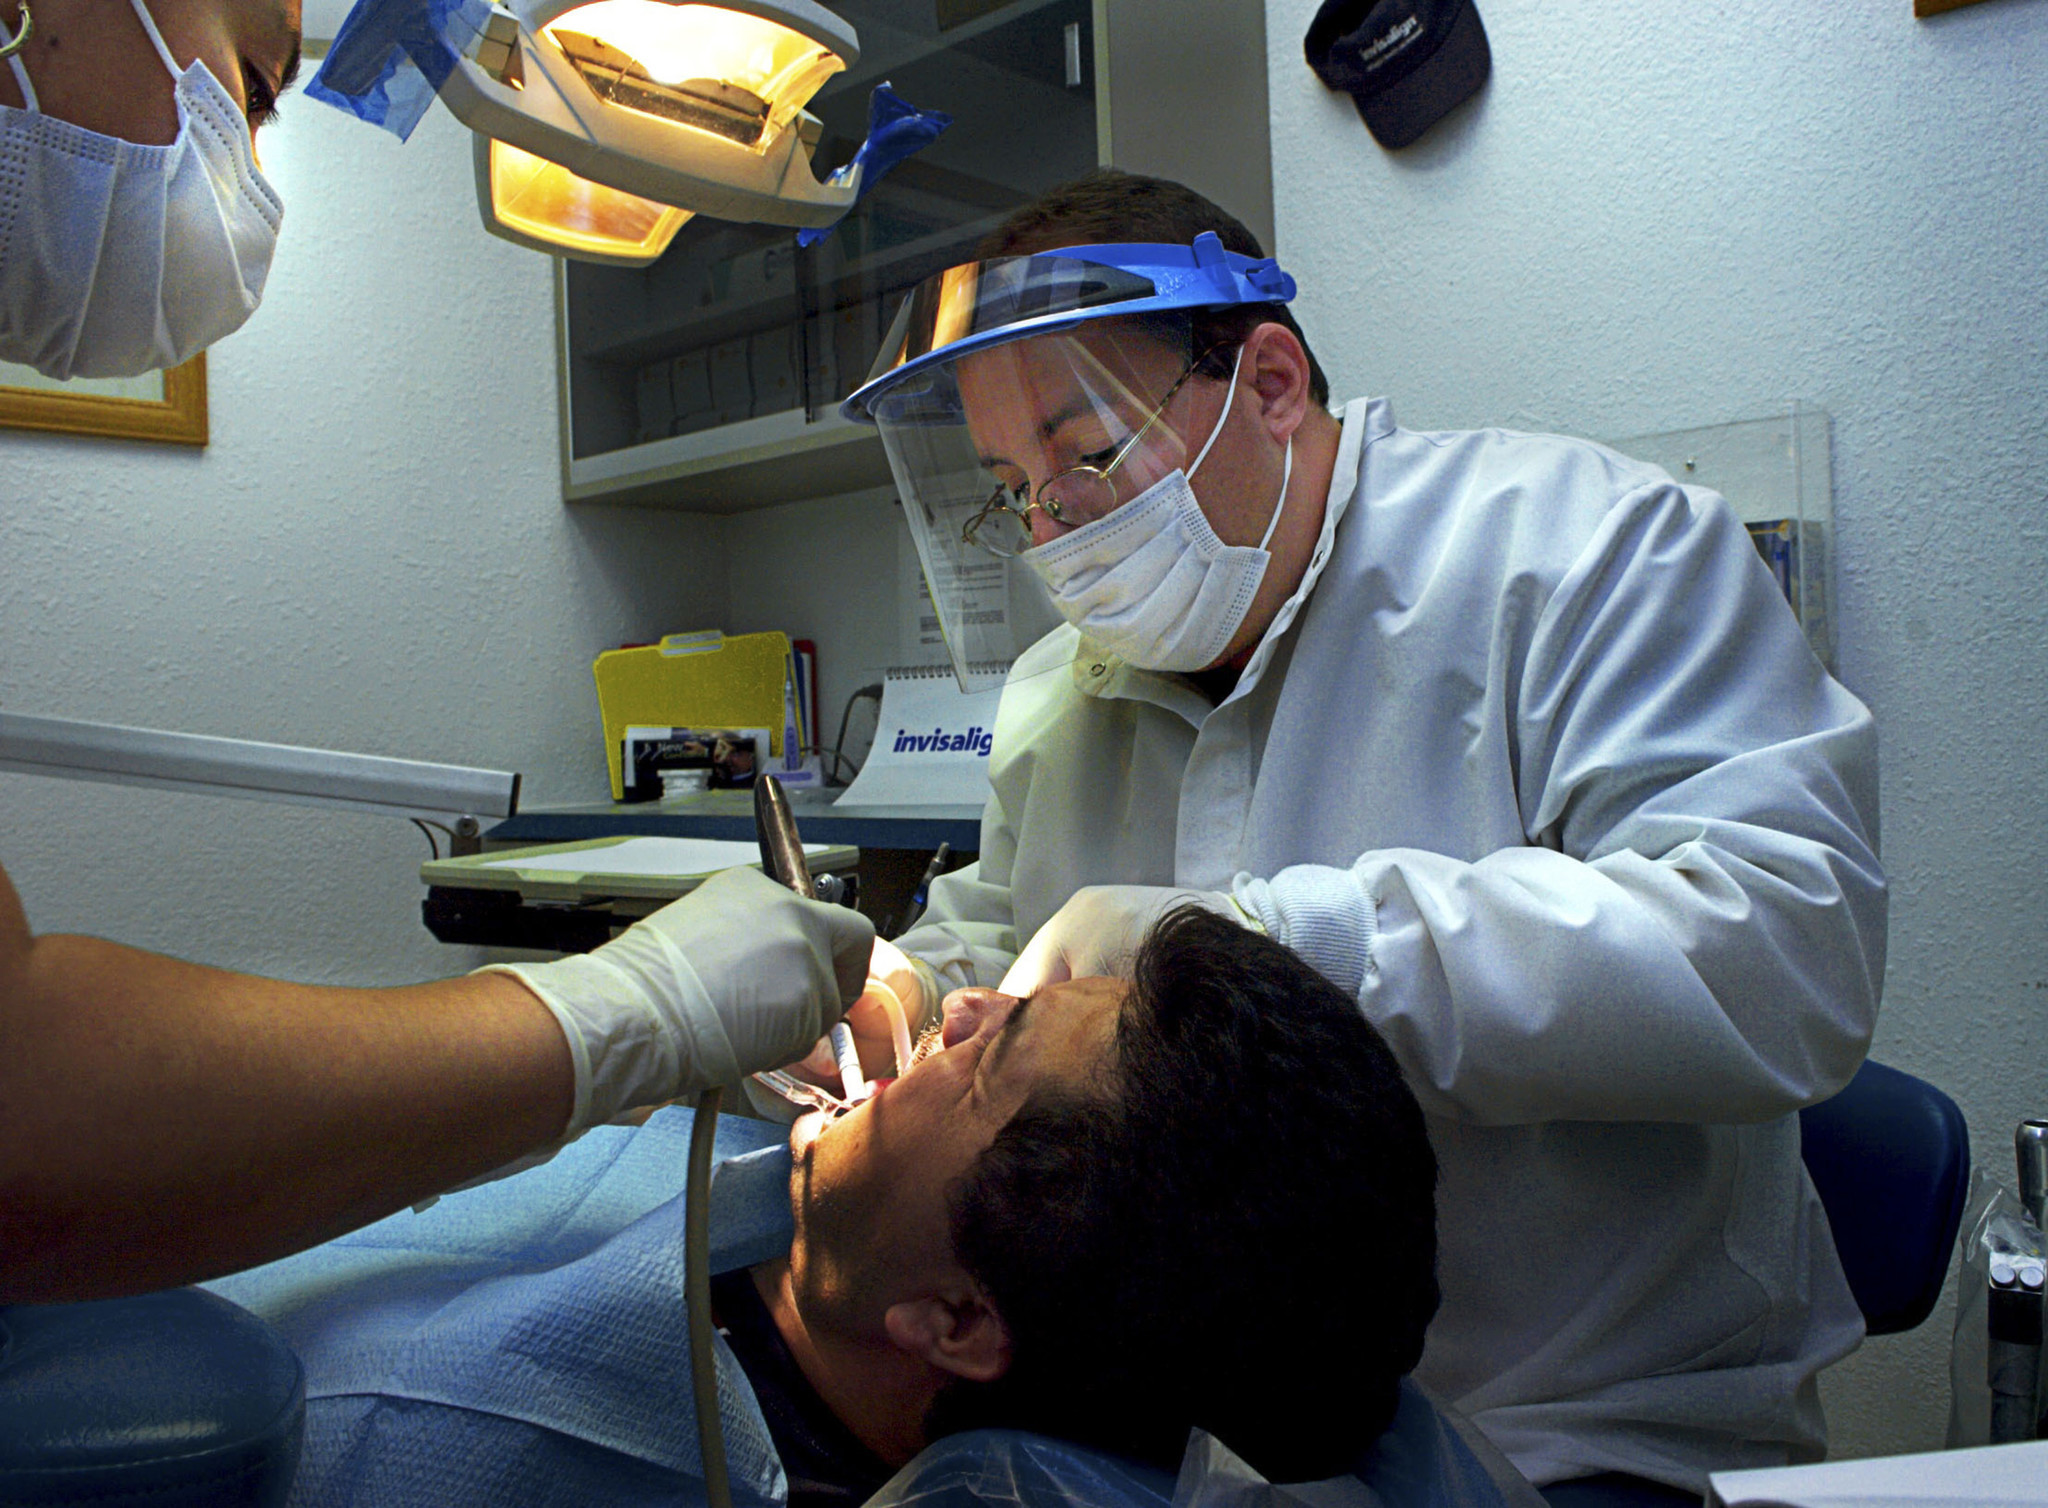 Orthodontists warn against diy braces dental care chicago tribune solutioingenieria Choice Image